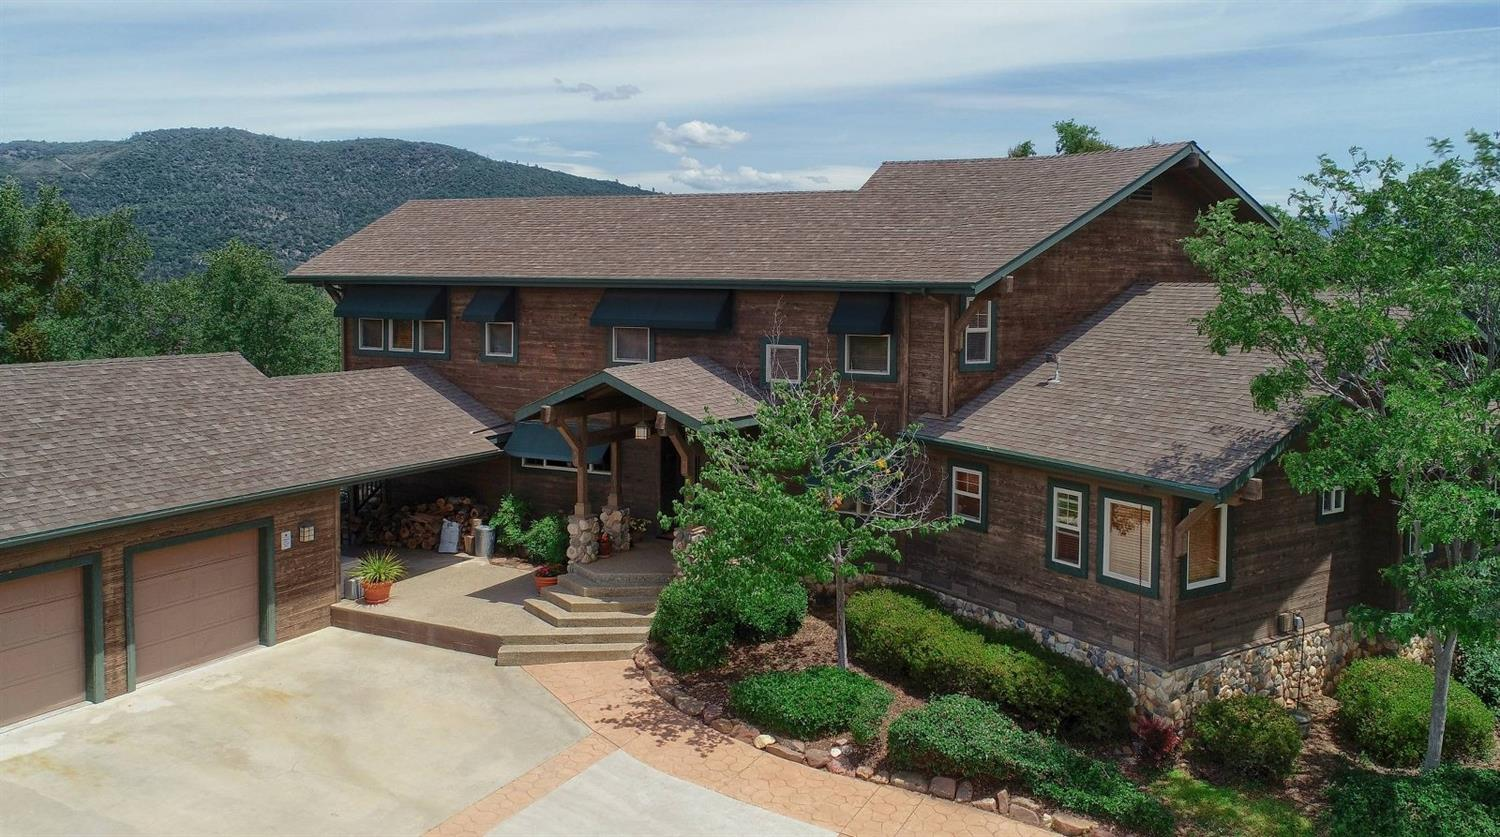 Take your breath away home! This custom Craftsman style home is stunning & located in the heart of Coarsegold w/original owner! Dramatic 2 story ceilings, slate flooring, beautiful view windows, rock fireplace in the living area. Dream kitchen w/island/breakfast bar, Wolf stove, Granite counters, built-in desk, 2nd sink, walk-in pantry & room for any chef to create! Enjoy the views from the sun room that converts to a screened-in porch. Media room is a great place for family movie night & a separate office. Great BDs w/a Jack 'n Jill BA & custom built details. Master retreat offers private deck access, fireplace & walk-in closet. Dbl. vanity, soaking tub & lots of storage in the master BA. Once outside, the striking view is everywhere! The deck is a great place to relax but continue to the in-ground pool, patio areas & beautiful outdoor kitchen! Swim surrounded by gorgeous mountain views! 3 car garage, 2 new AC units, good well, fenced basketball court, laundry chute & all on 40+/- AC!